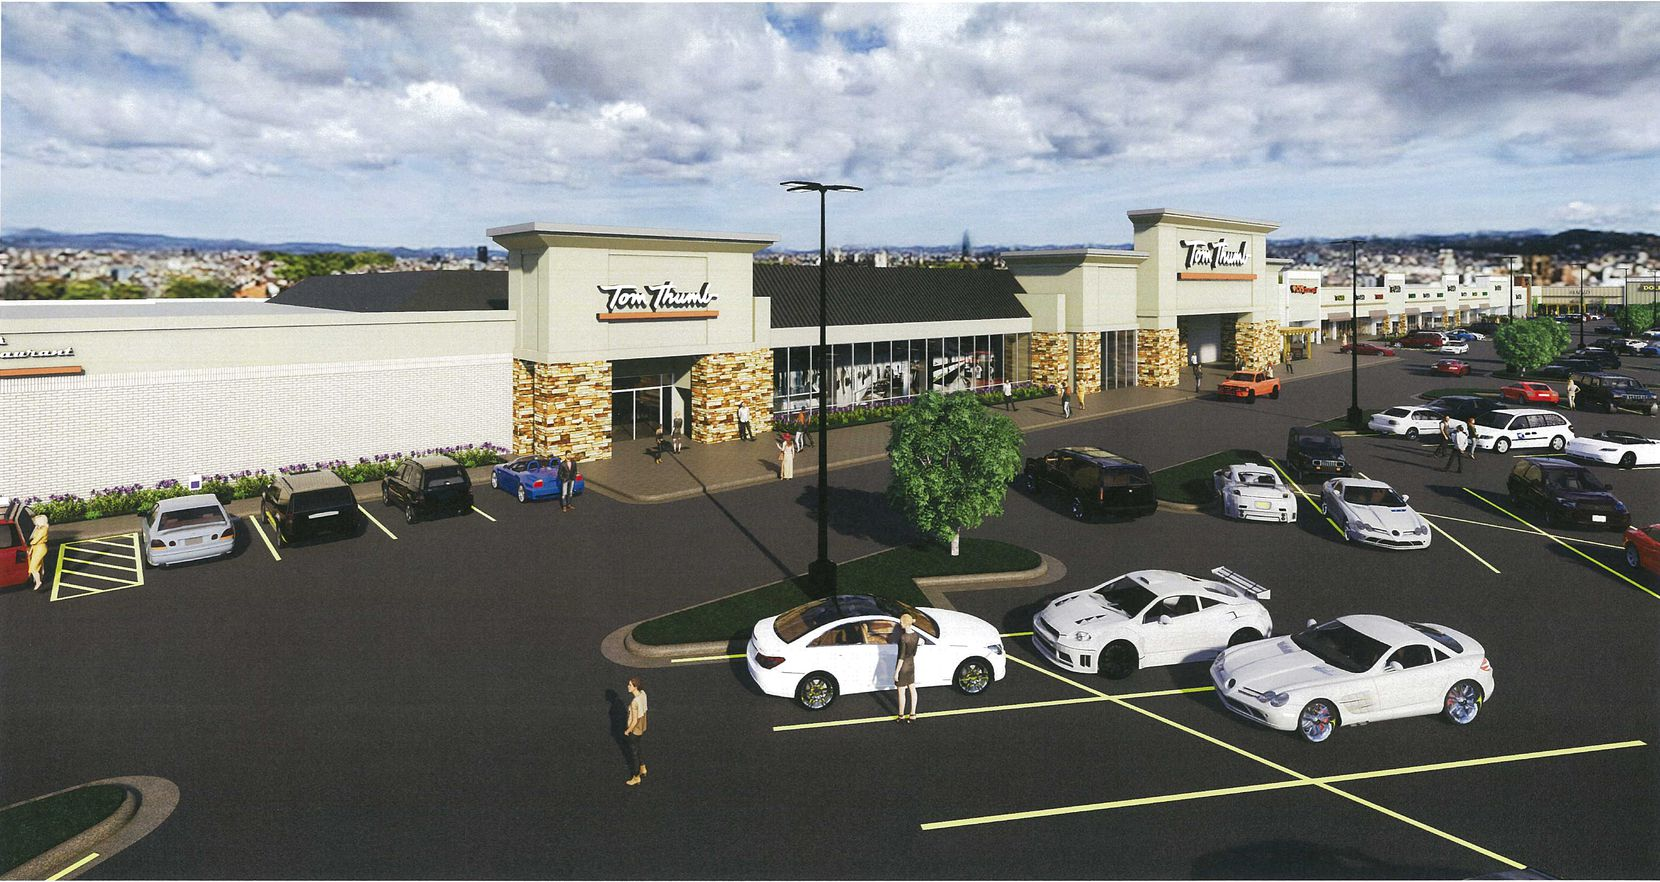 Fielder Plaza is anchored by a Tom Thumb supermarket.